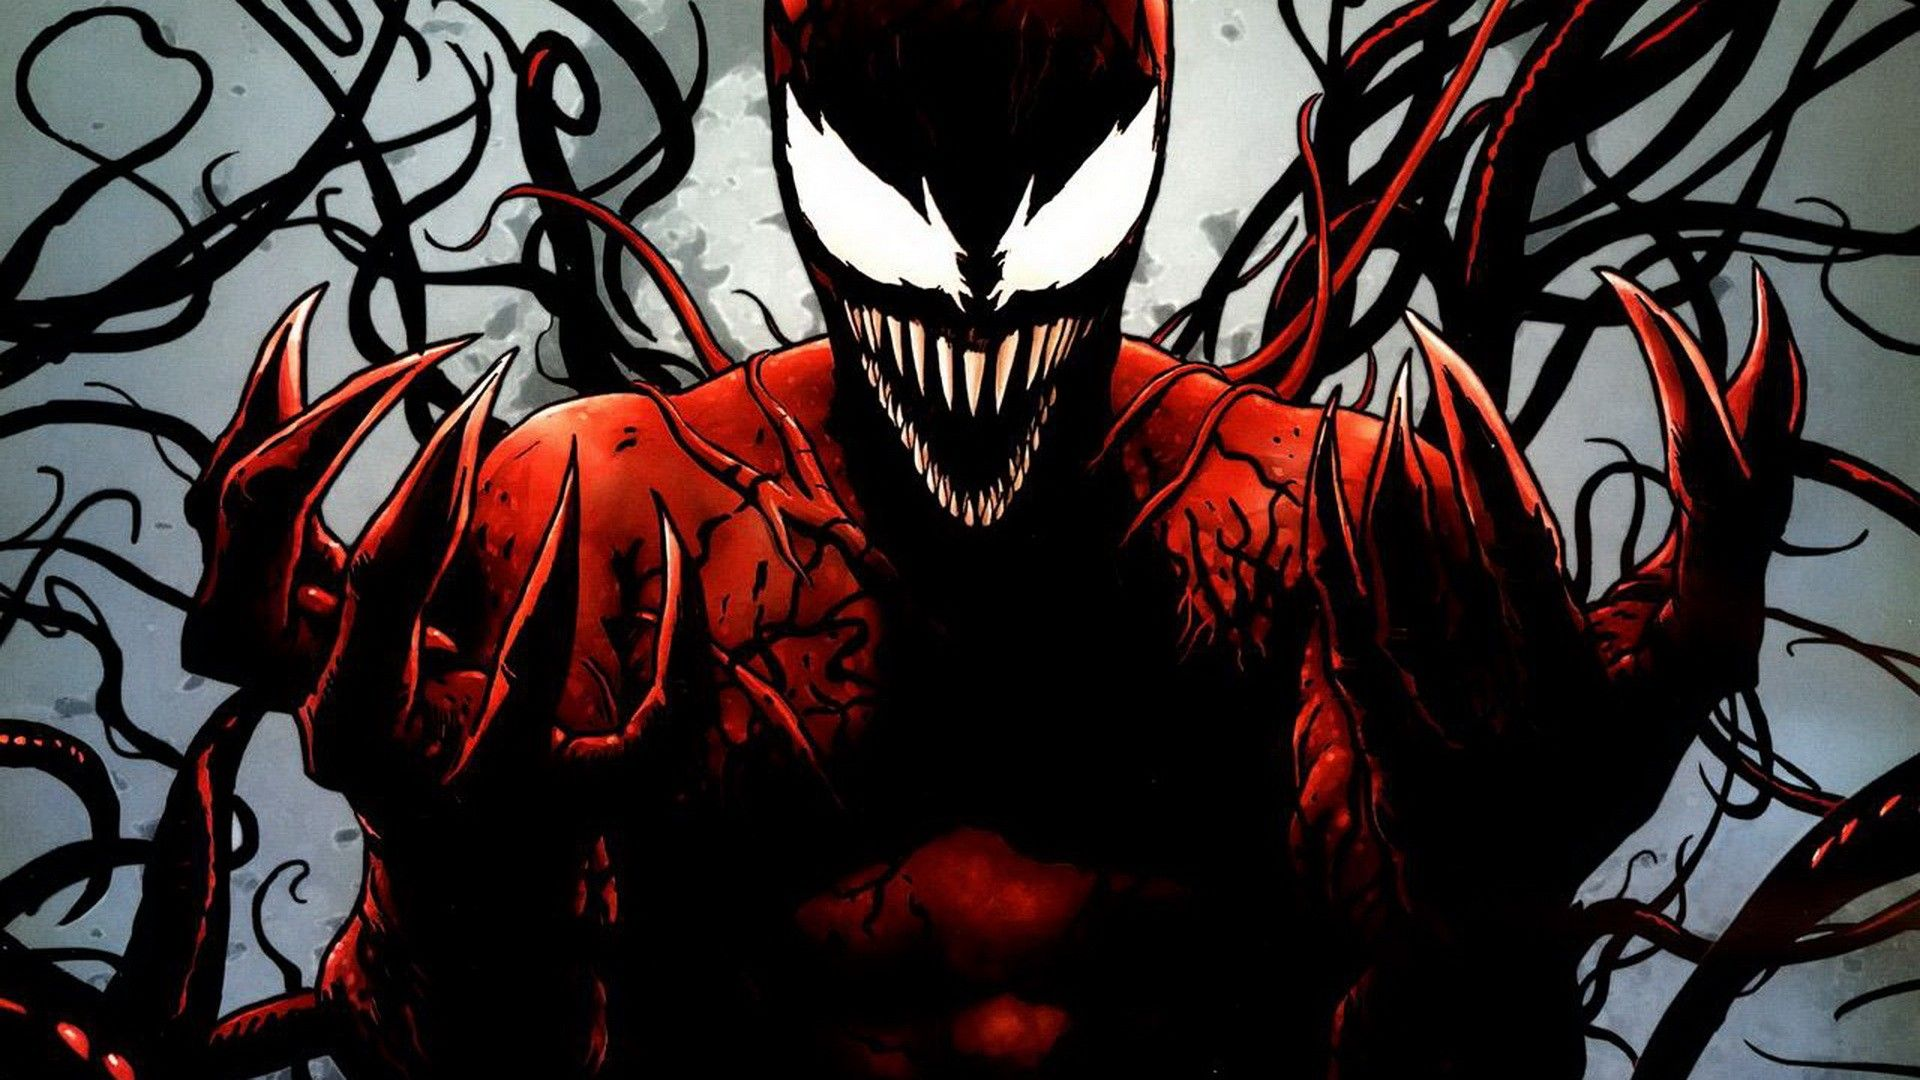 Carnage Hd Wallpapers Backgrounds Wallpaper Page Symbiote